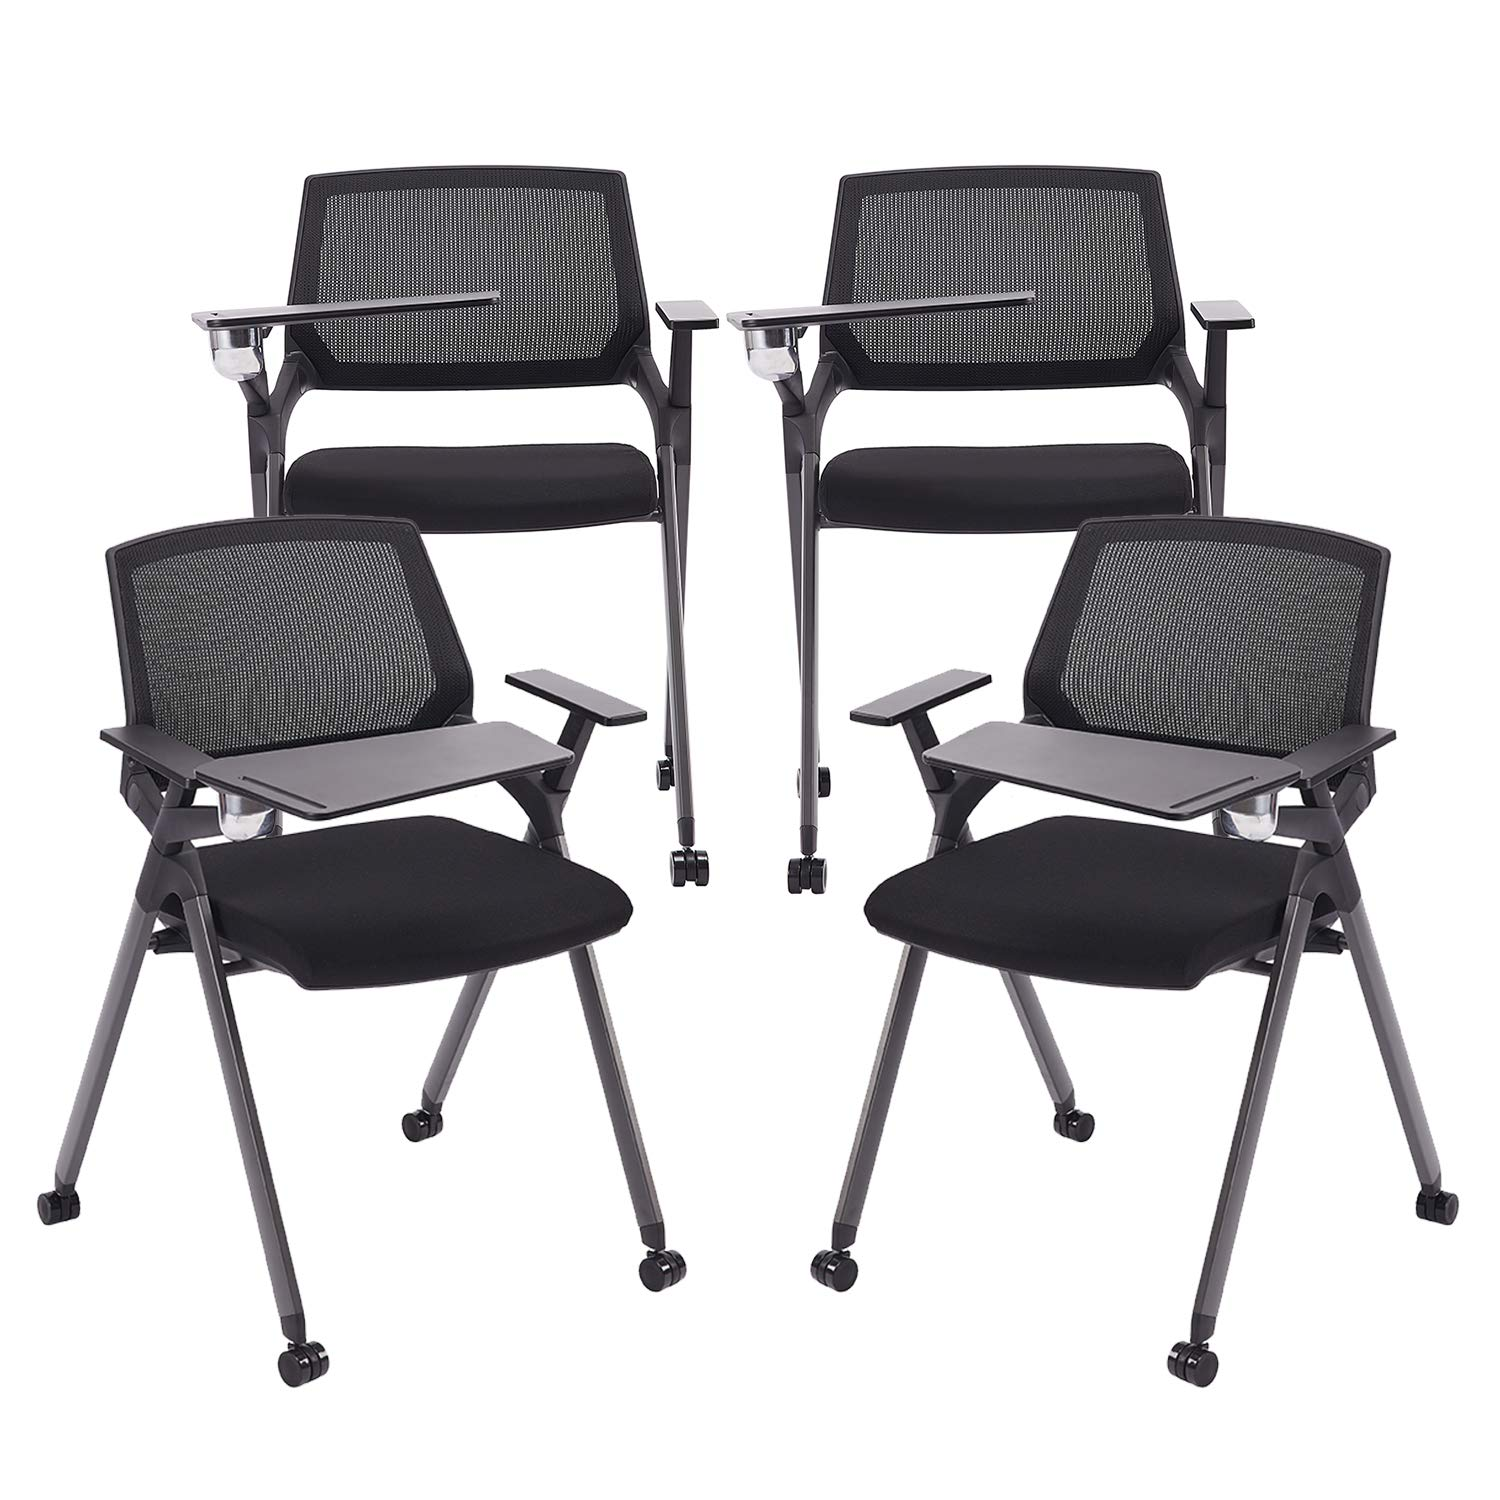 CLATINA Reception Stacking Chair Mesh Guest Nesting with Tablet and Caster Wheels for Office School Training Conference Waiting Room BIFMA Certified Black 4 Pack